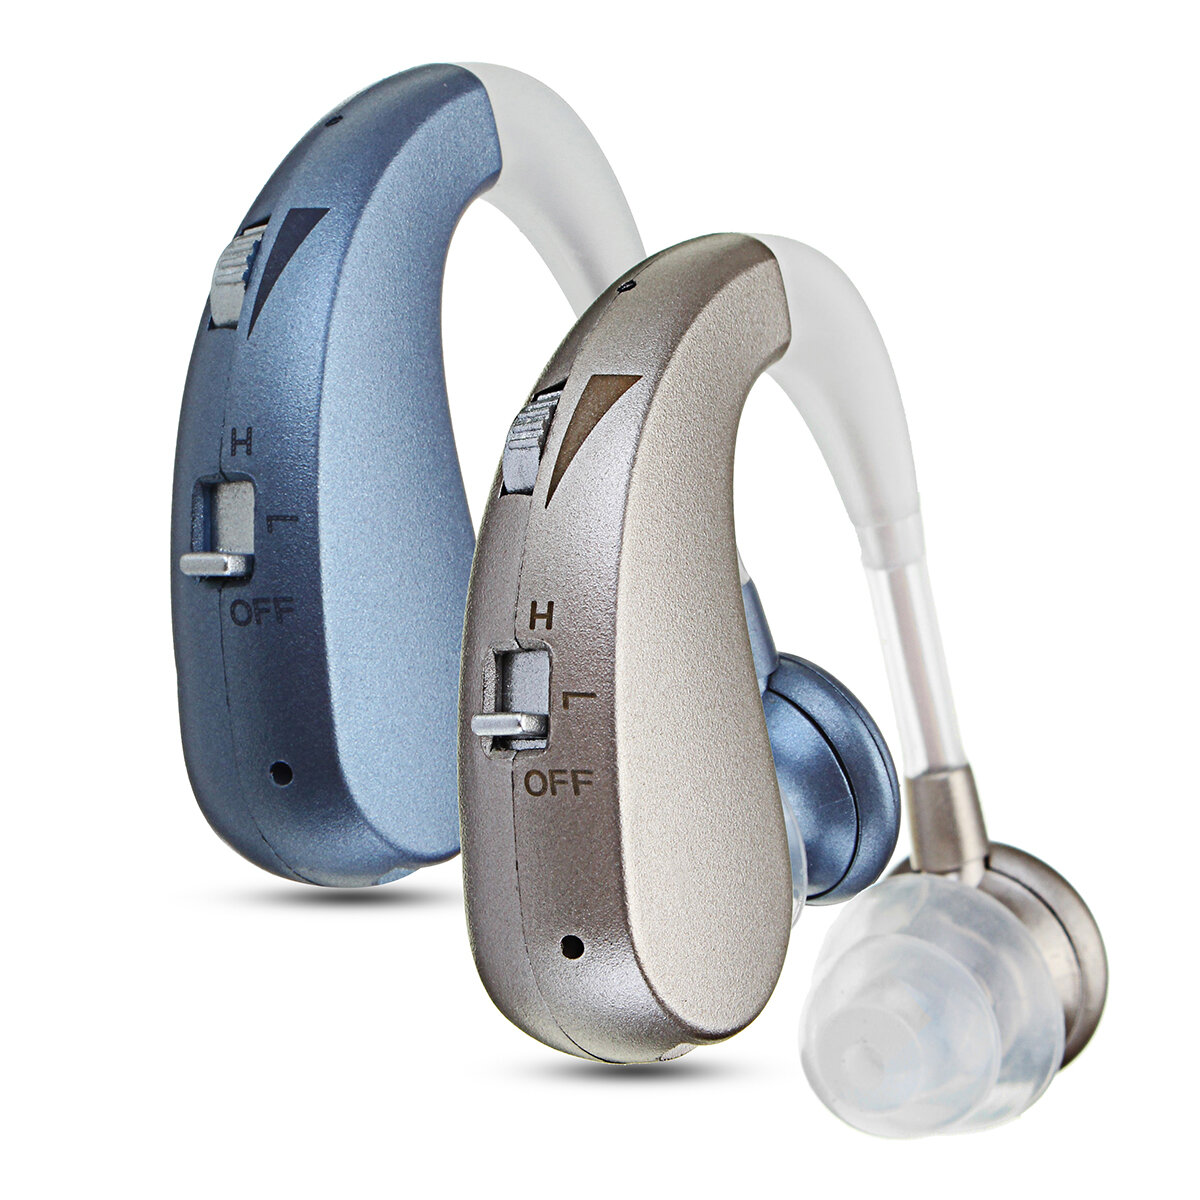 Image result for hearing aids